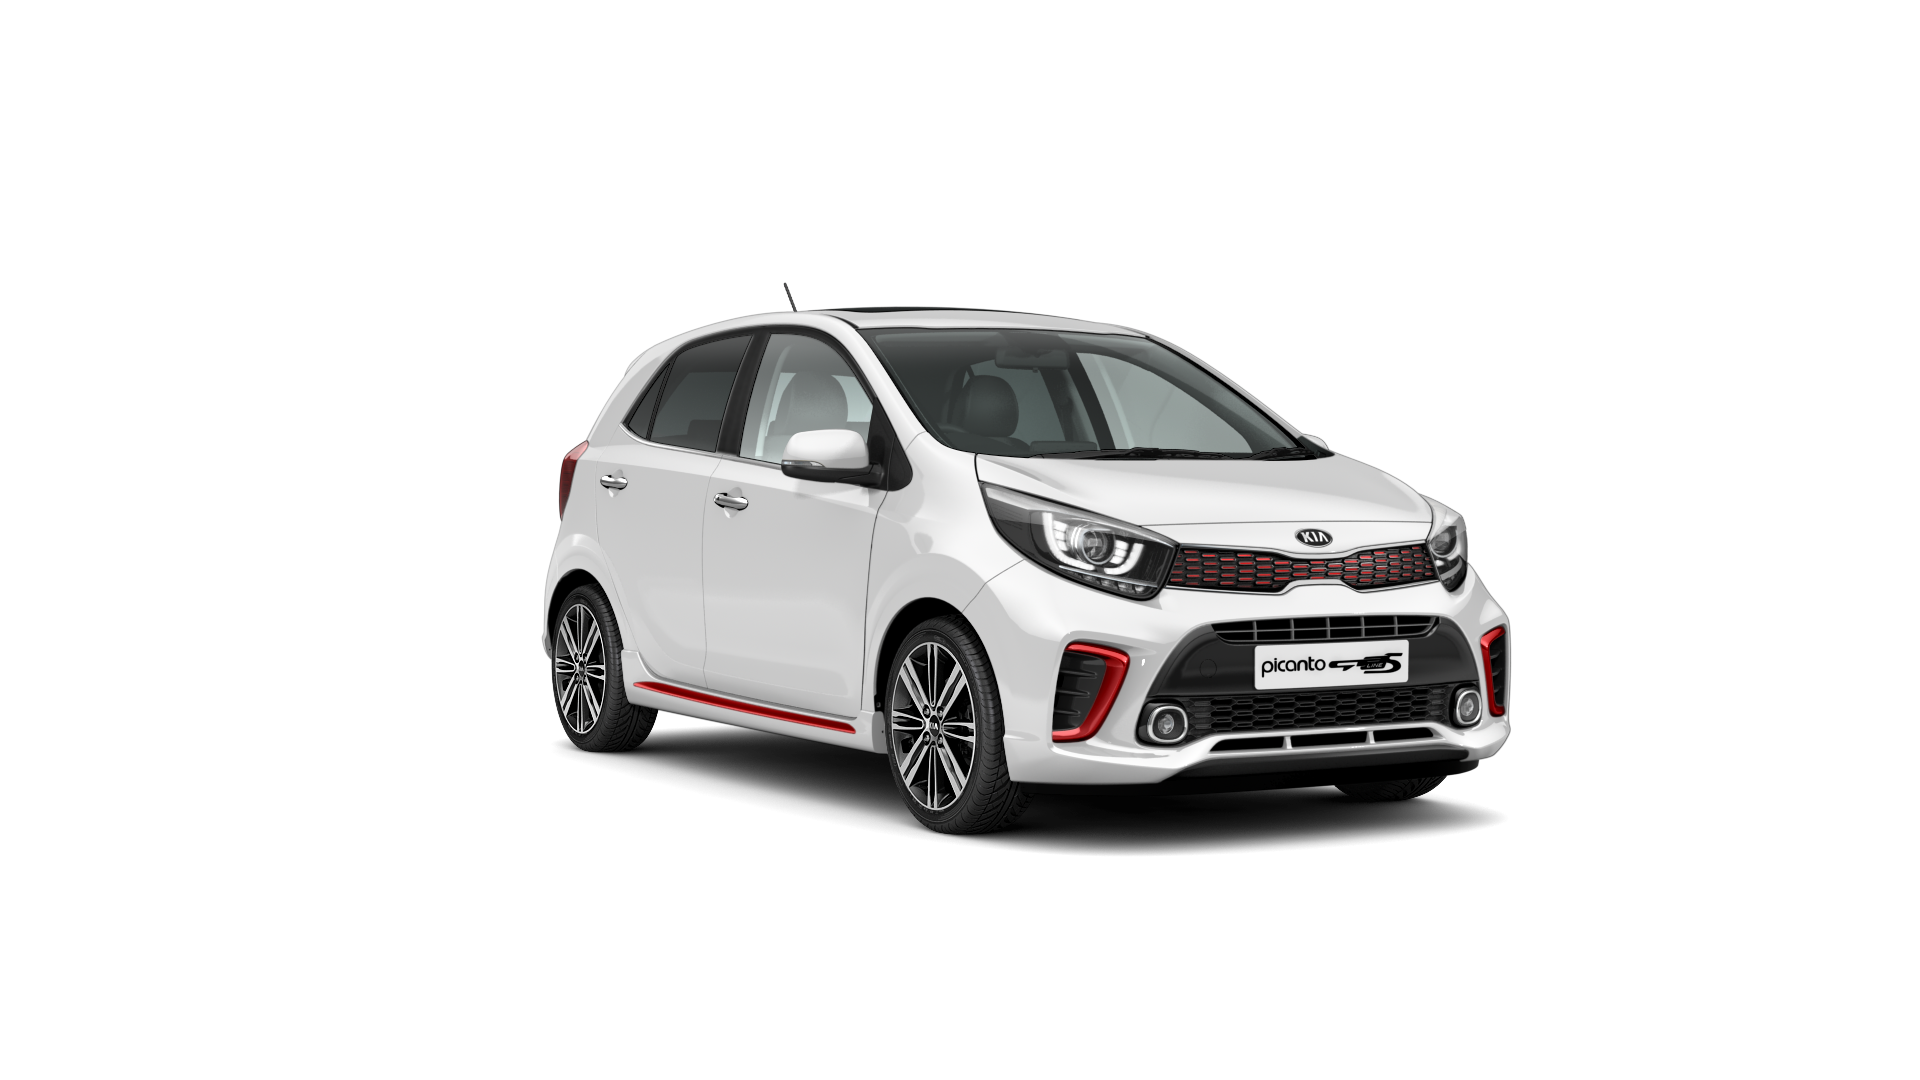 new kia picanto cars for sale at downeys car dealer based in newtownards northern ireland. Black Bedroom Furniture Sets. Home Design Ideas